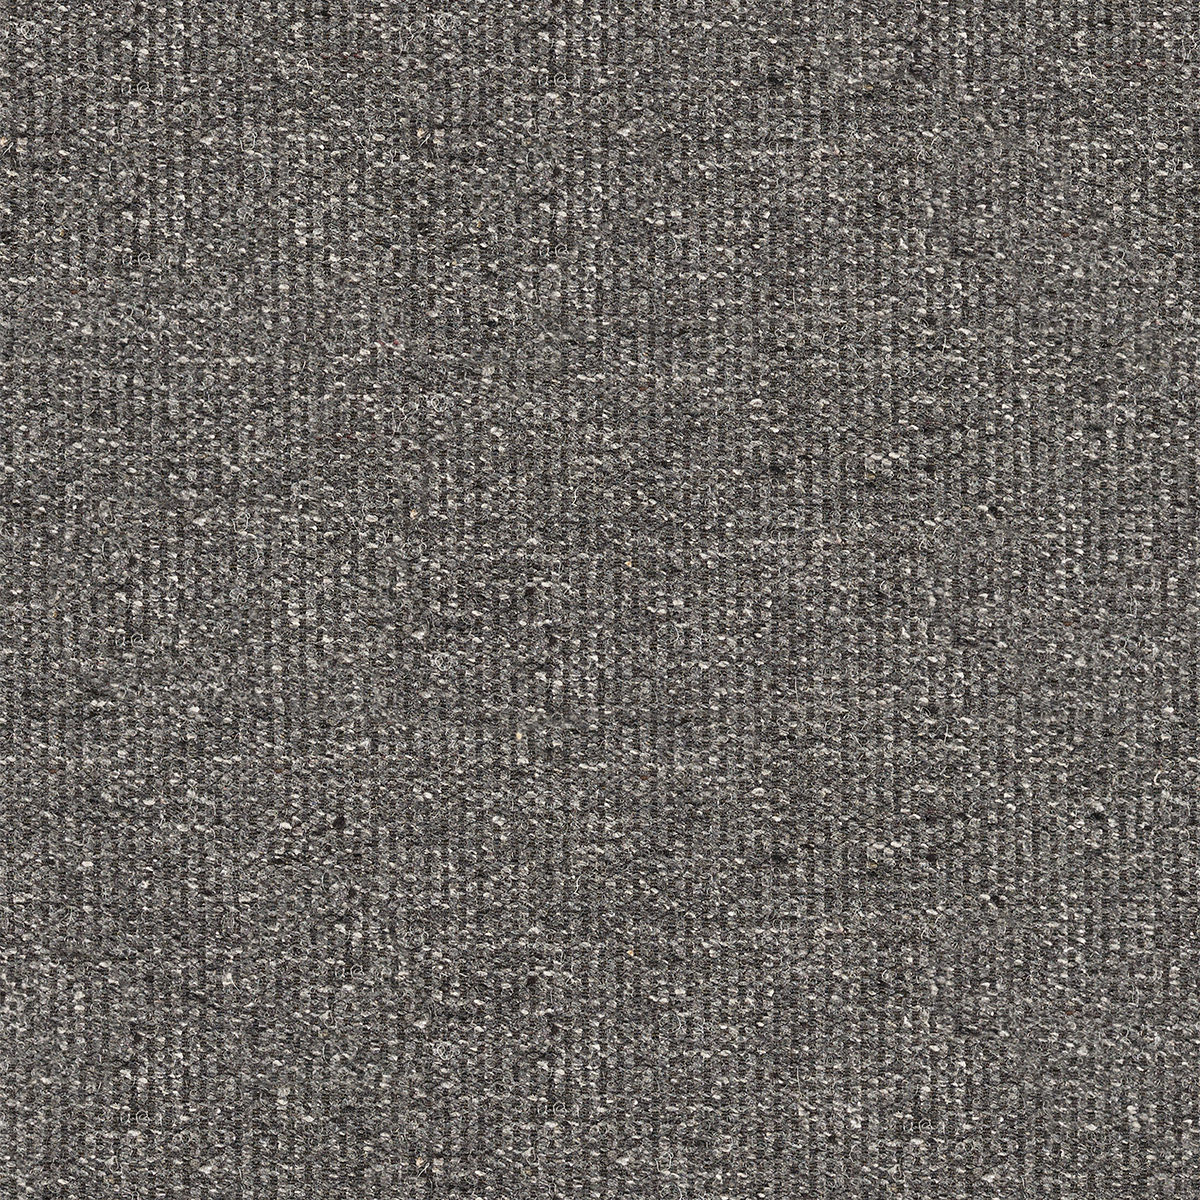 Homage - Dashing - 4035 - 04 - Half Yard Tileable Swatches